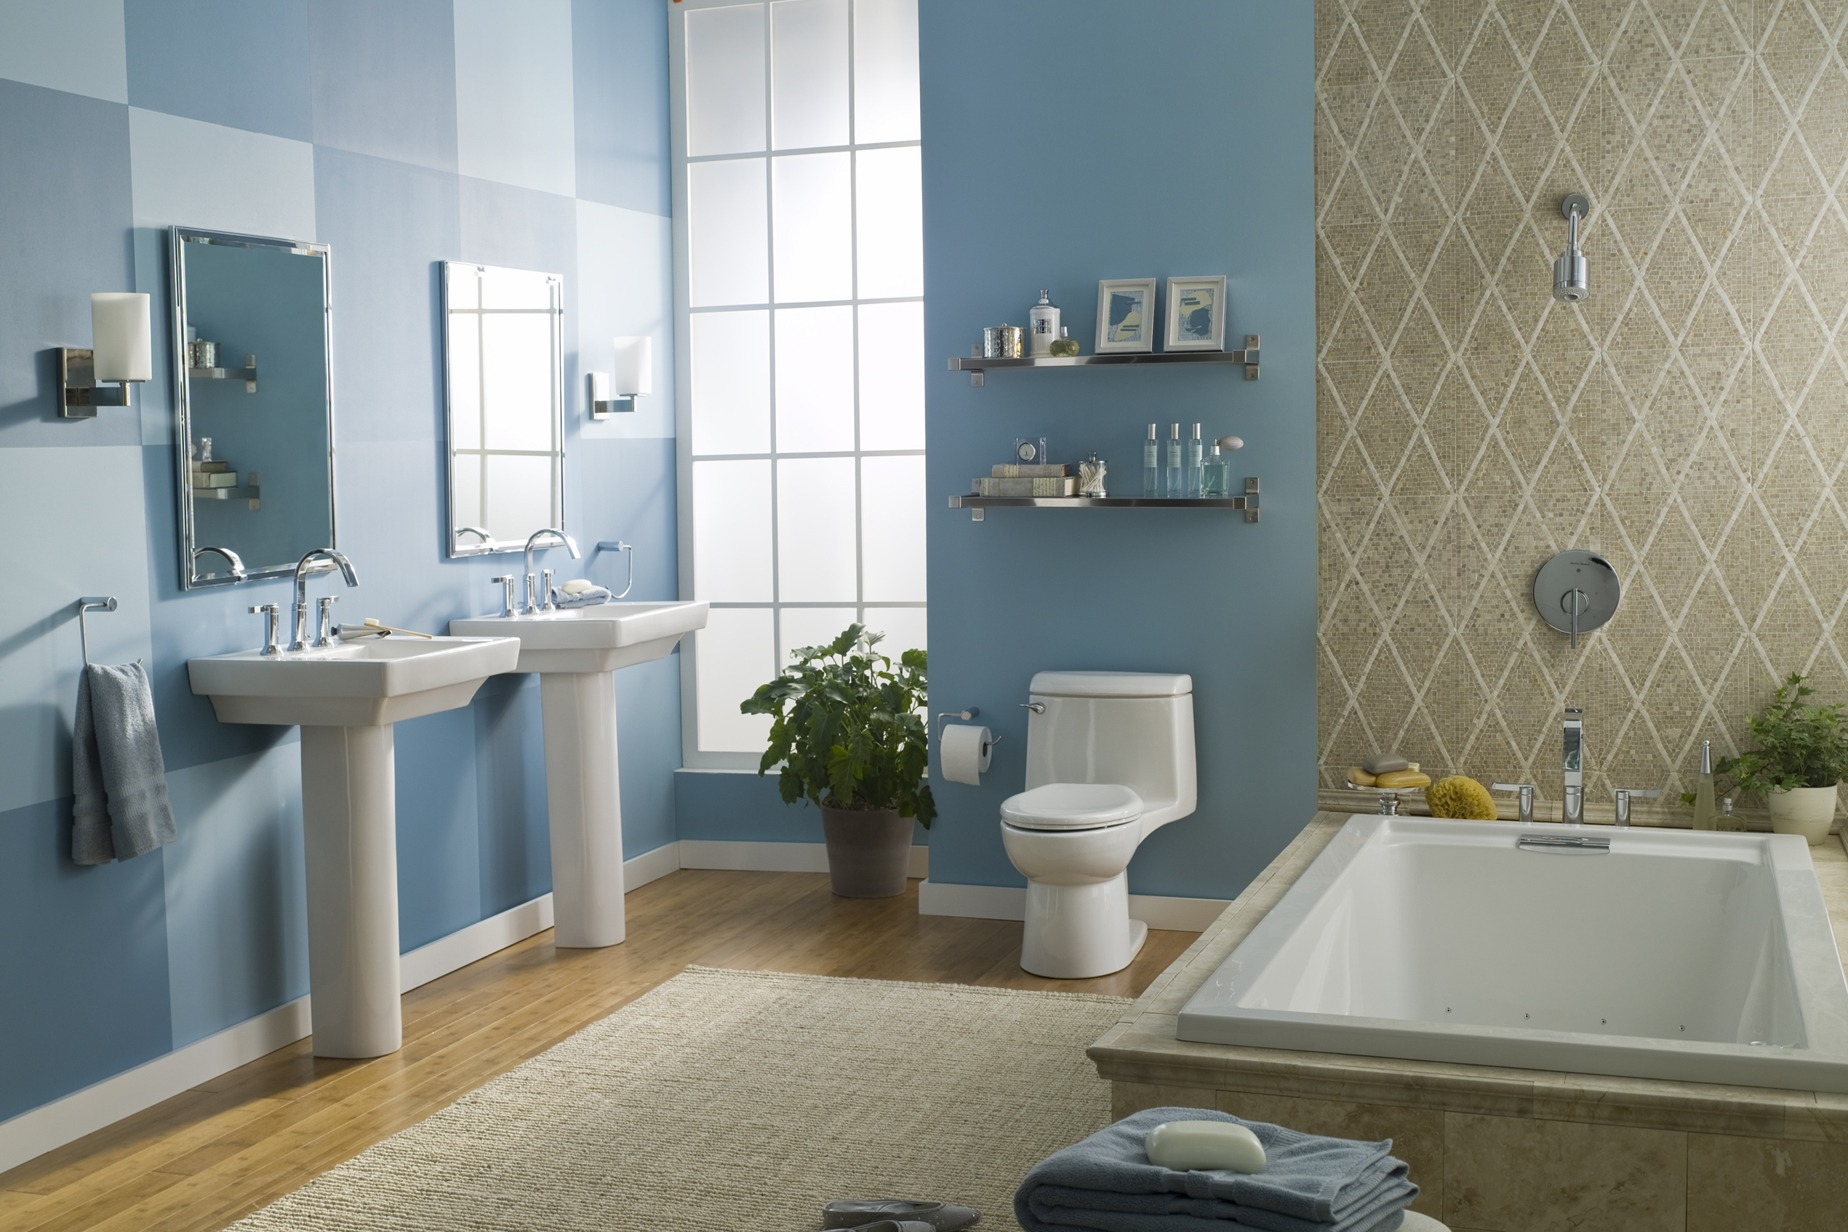 13 Pieces for a Complete Bathroom Re-Do - Quicken Loans Zing Blog